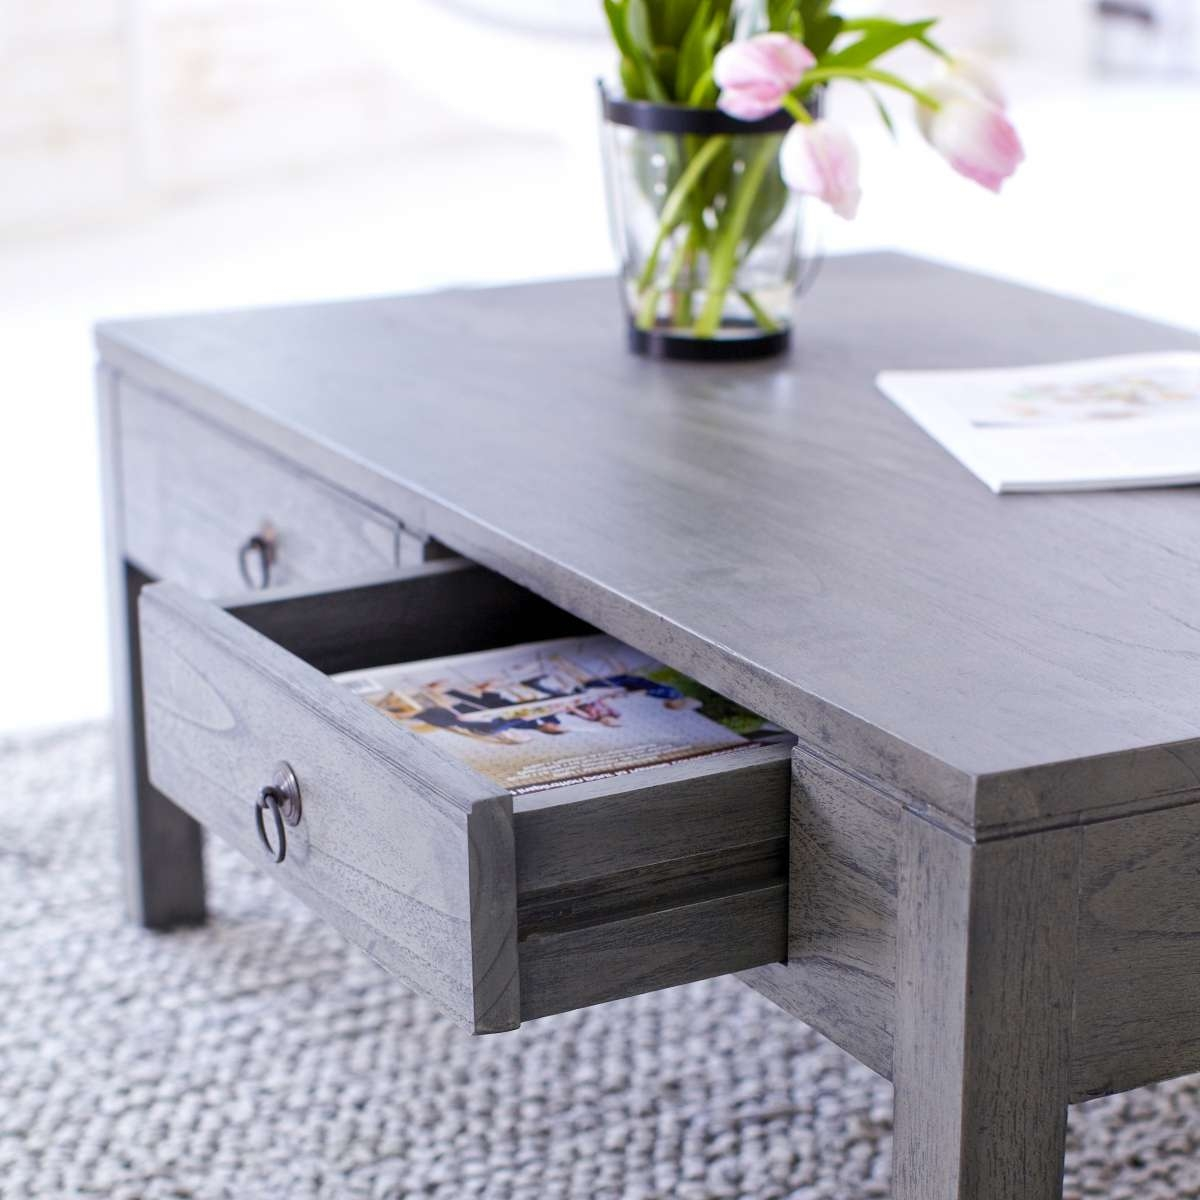 Coffee Tables : Grey Wood Coffee Table Awesome Rustic Plans Round Pertaining To Popular Grey Wood Coffee Tables (View 5 of 20)